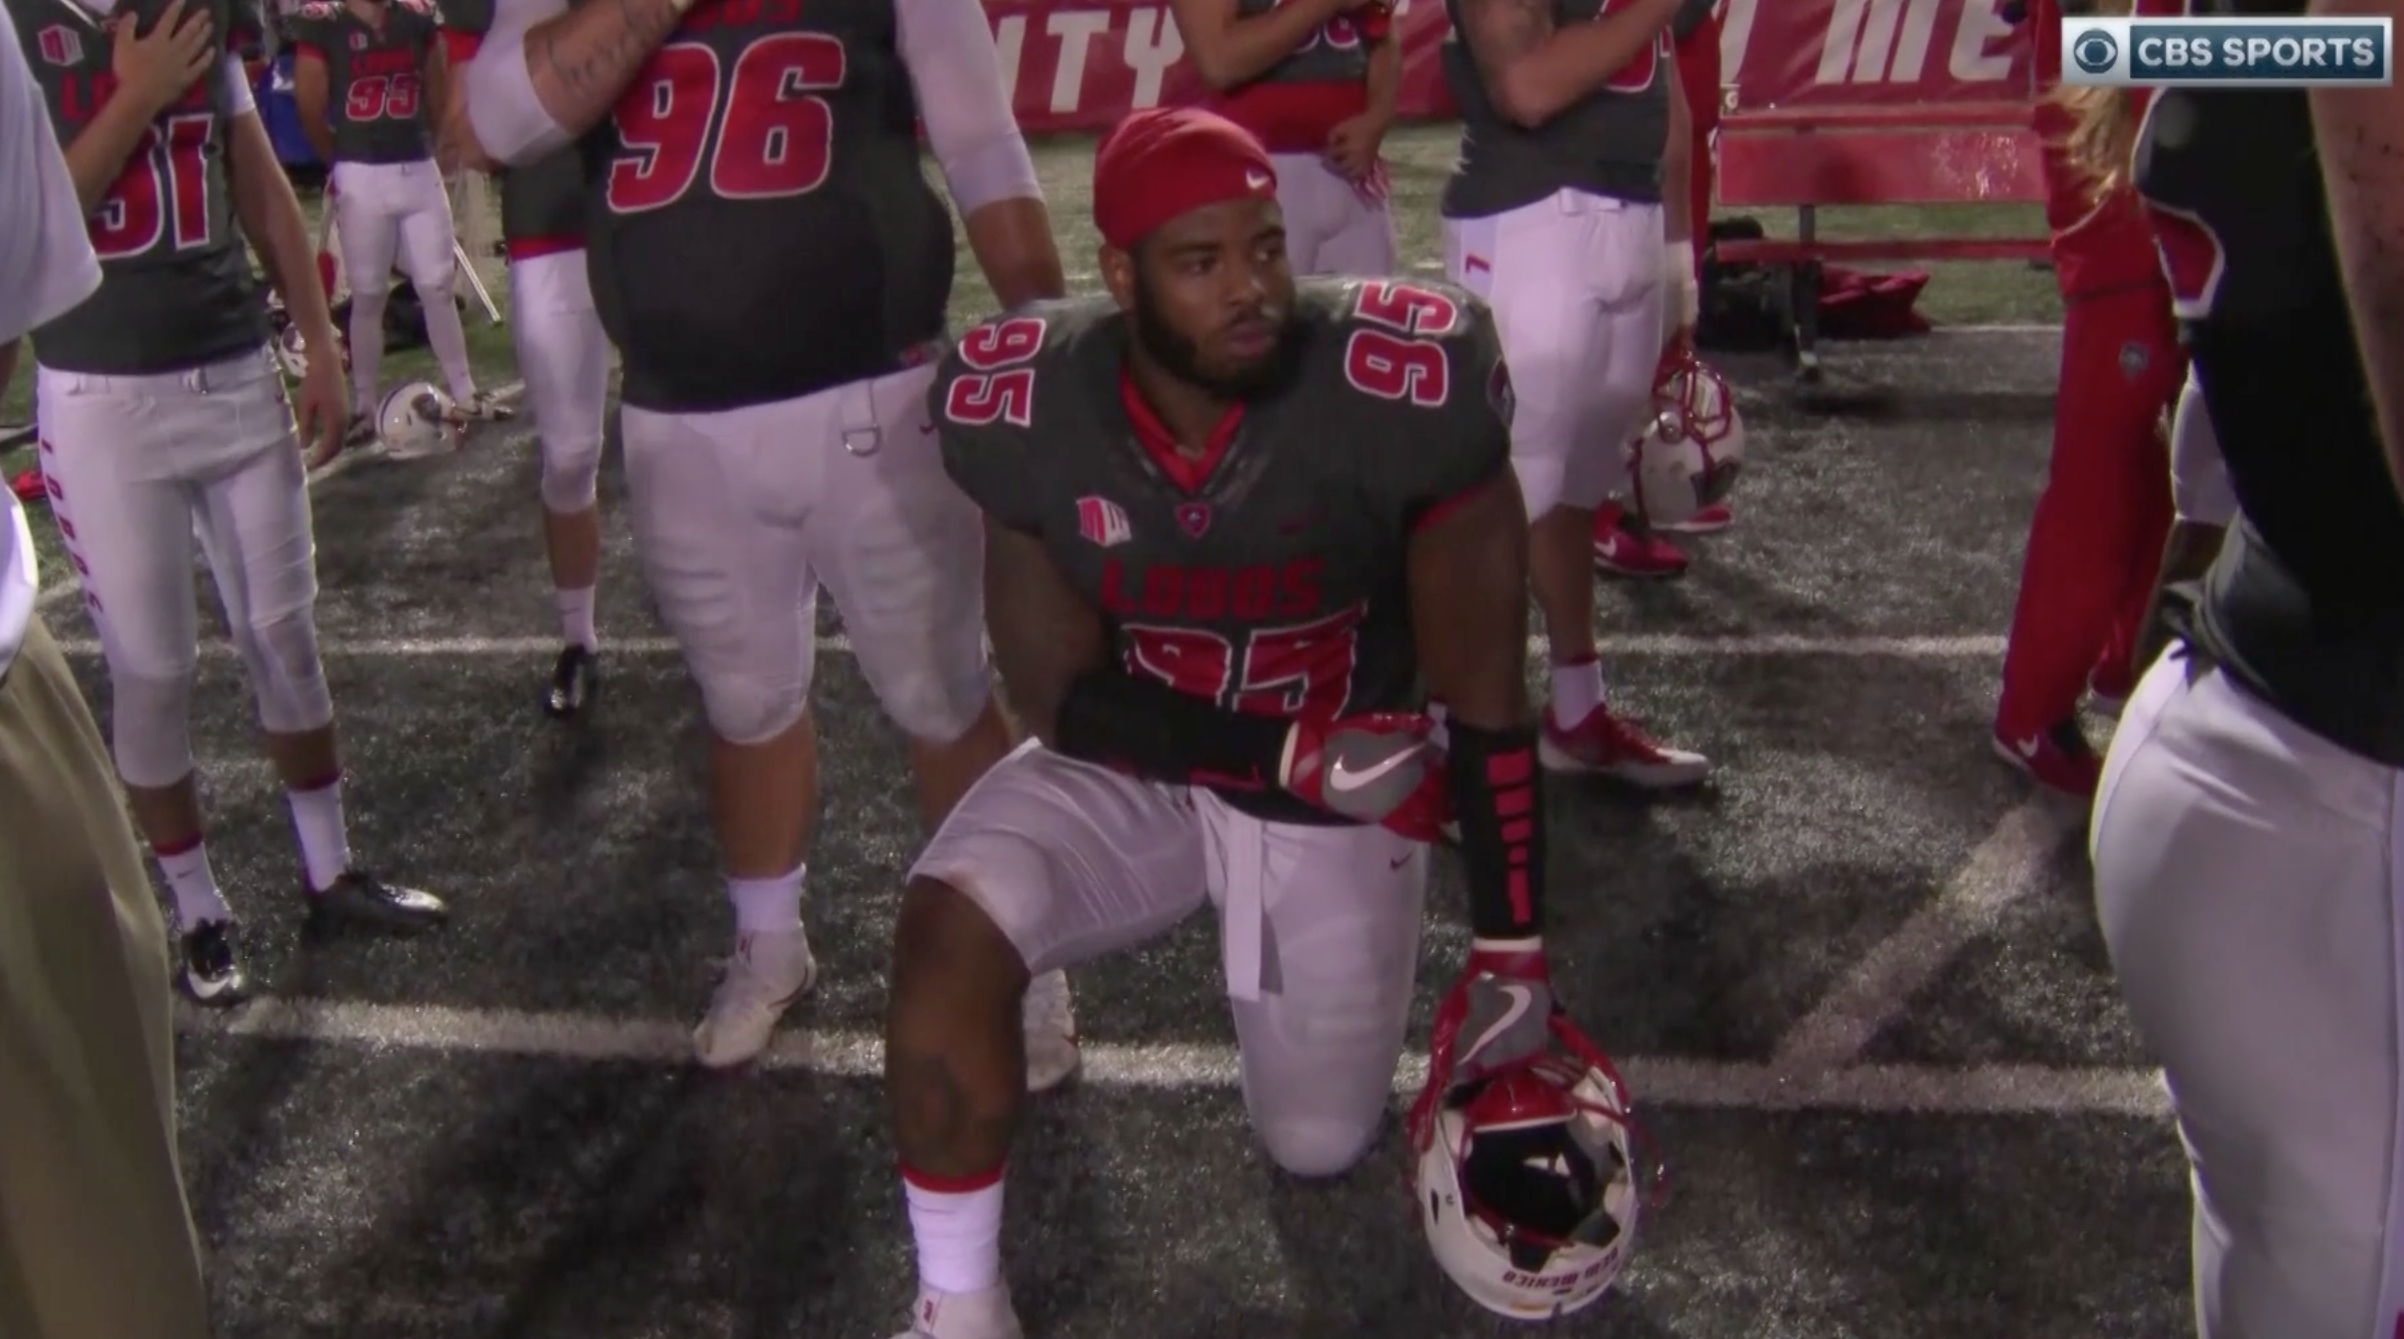 Photo of New Mexico players first college athletes to kneel against racism